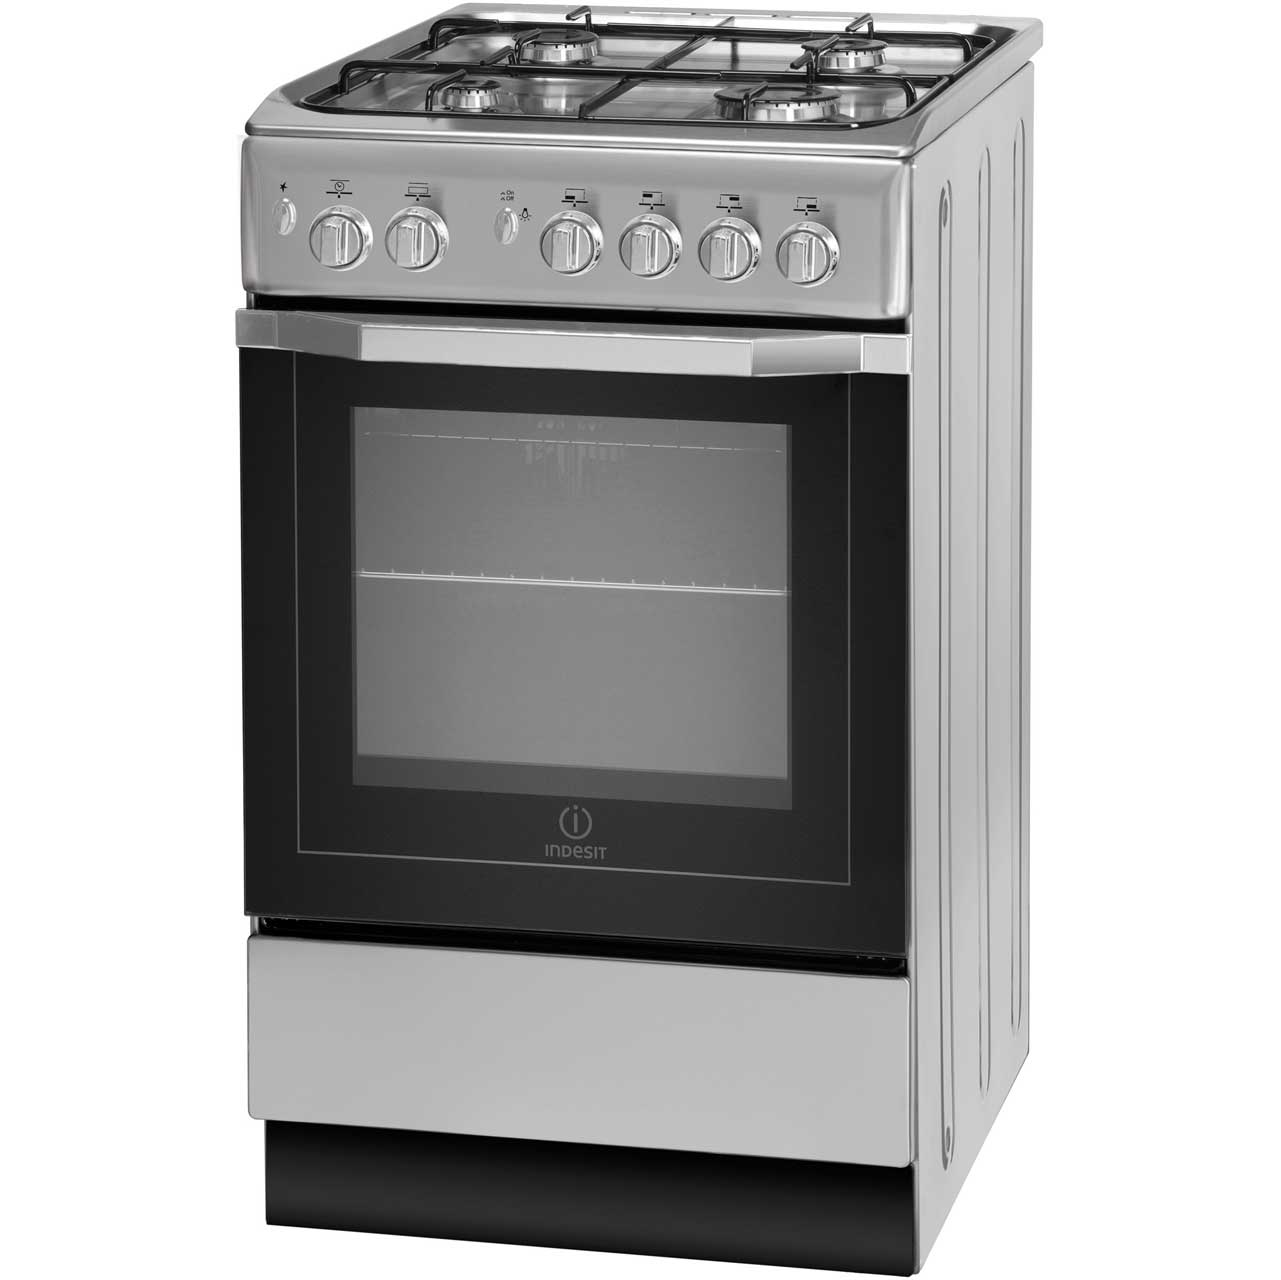 indesit i5gg1s free standing gas cooker with gas hob 50cm. Black Bedroom Furniture Sets. Home Design Ideas